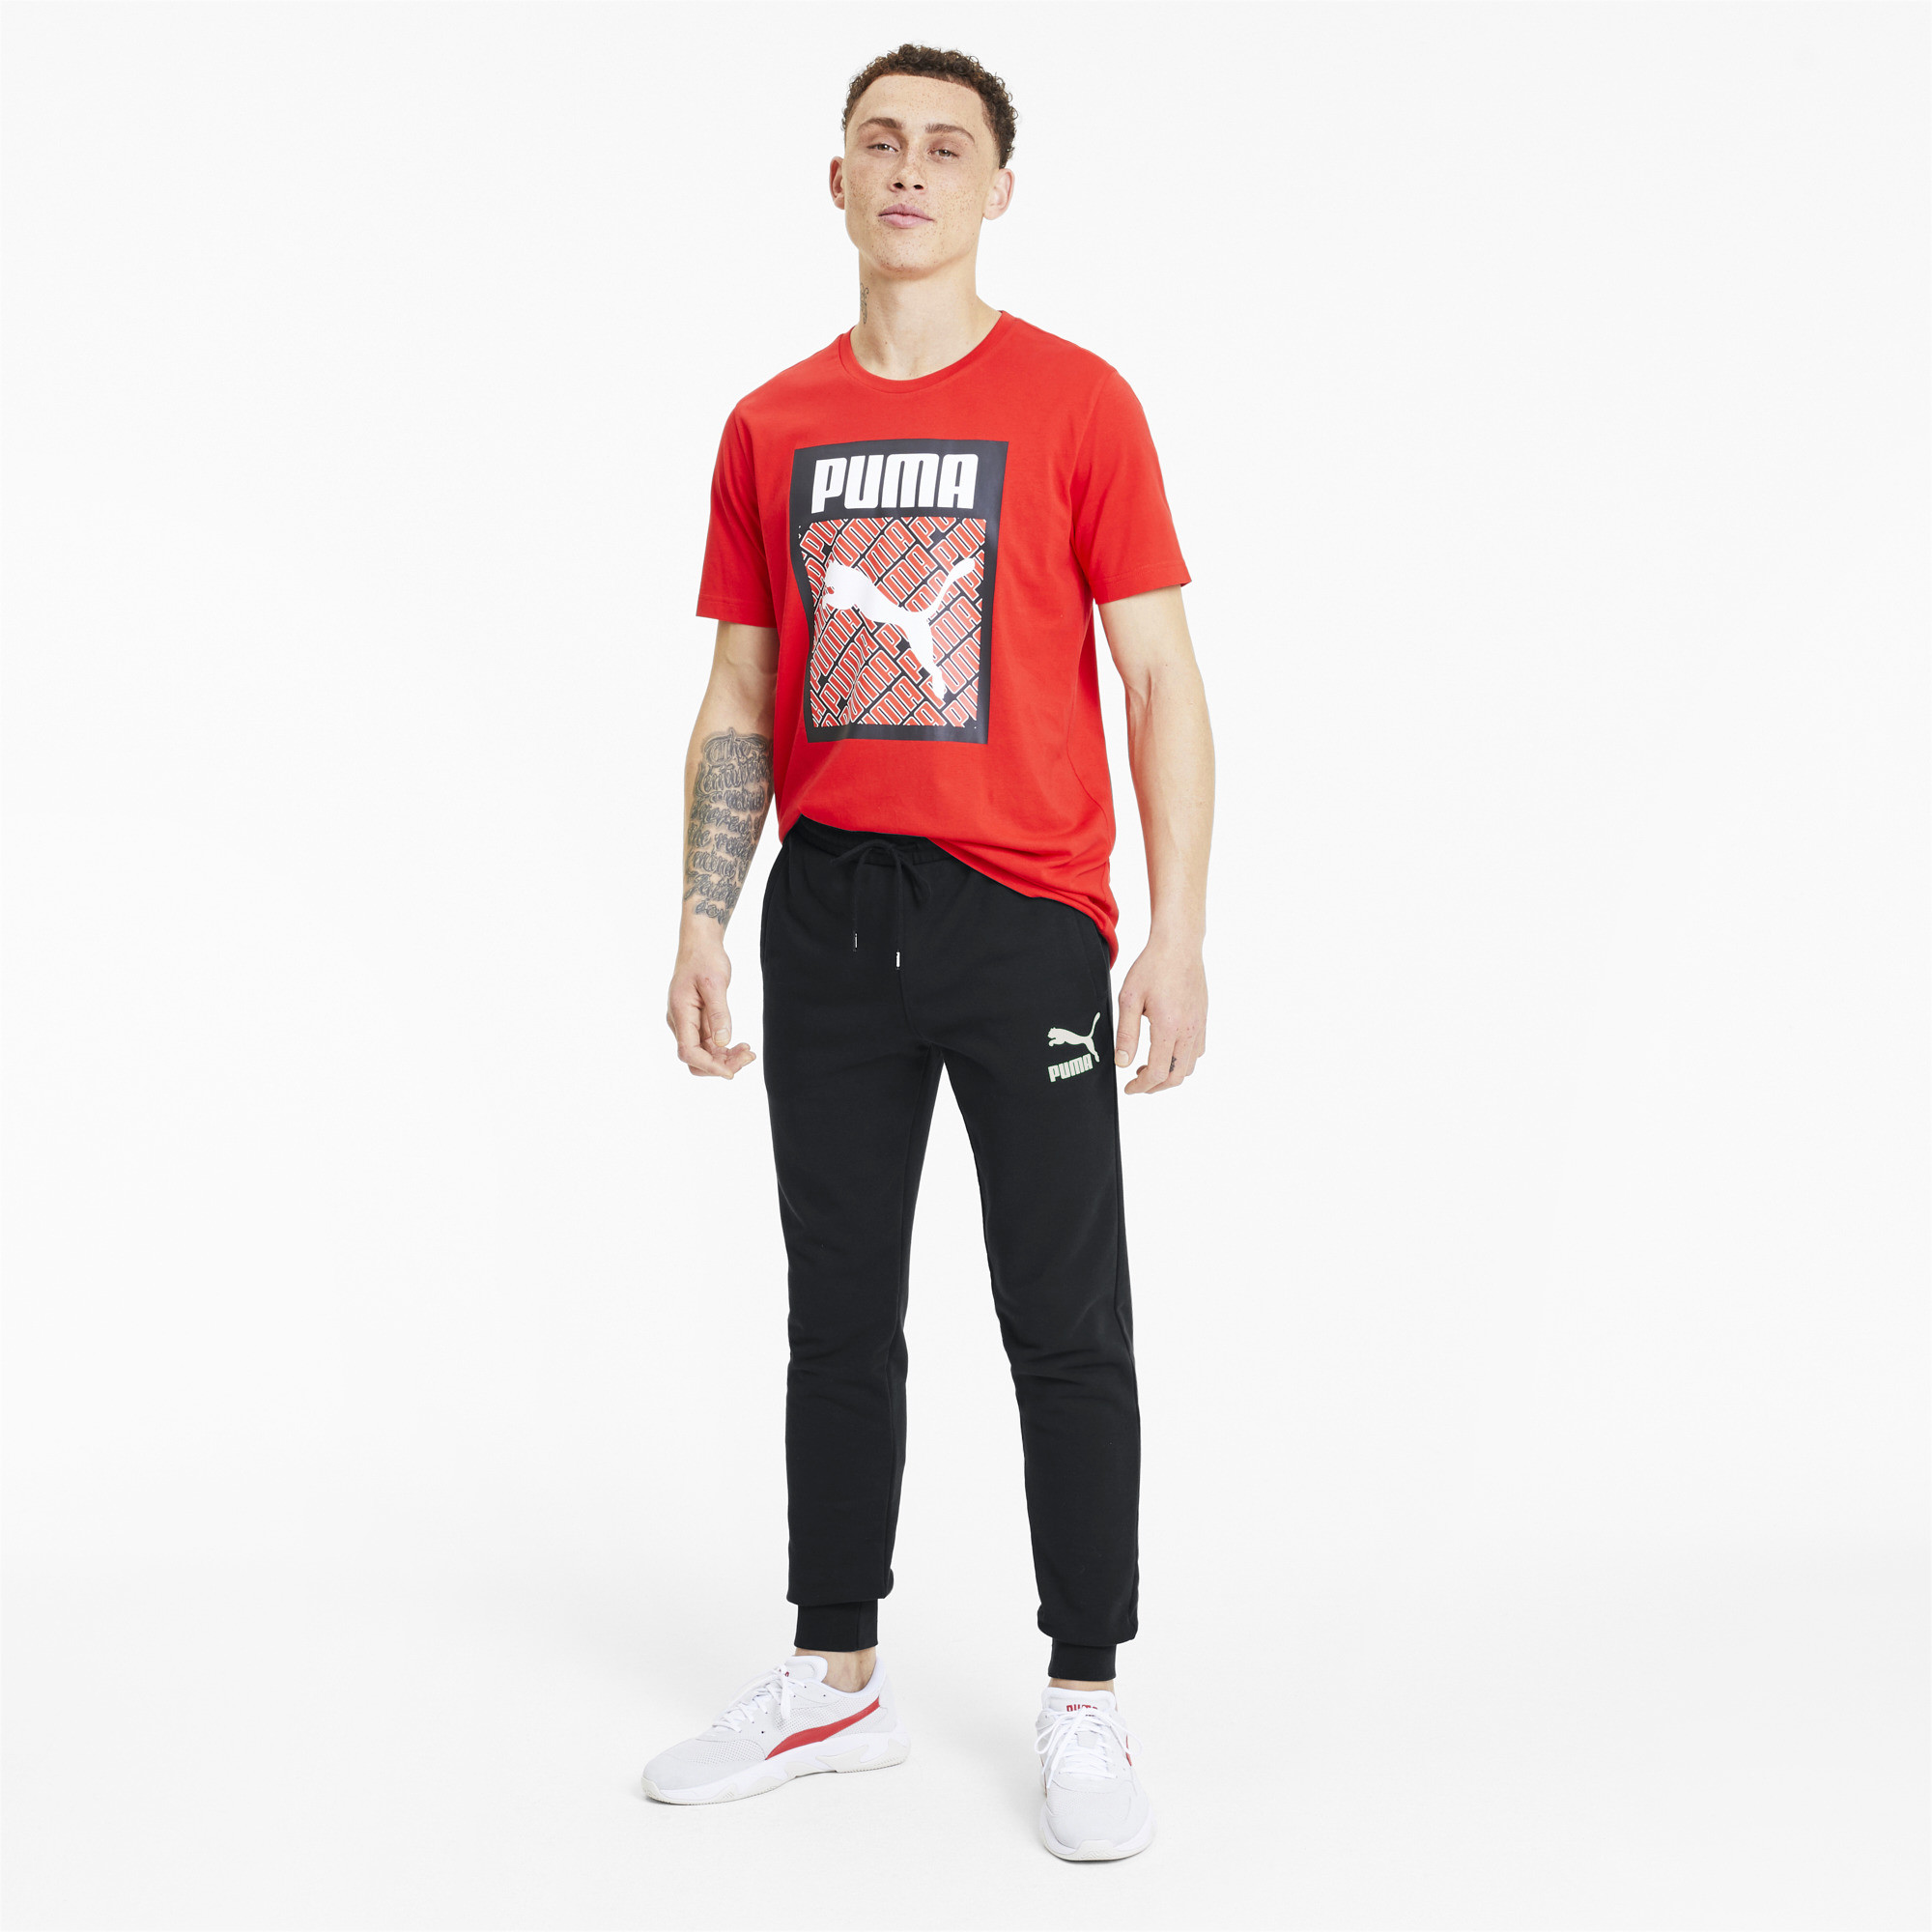 PUMA-Classics-Men-039-s-Cuffed-Sweatpants-Men-Knitted-Pants-Sport-Classics thumbnail 6